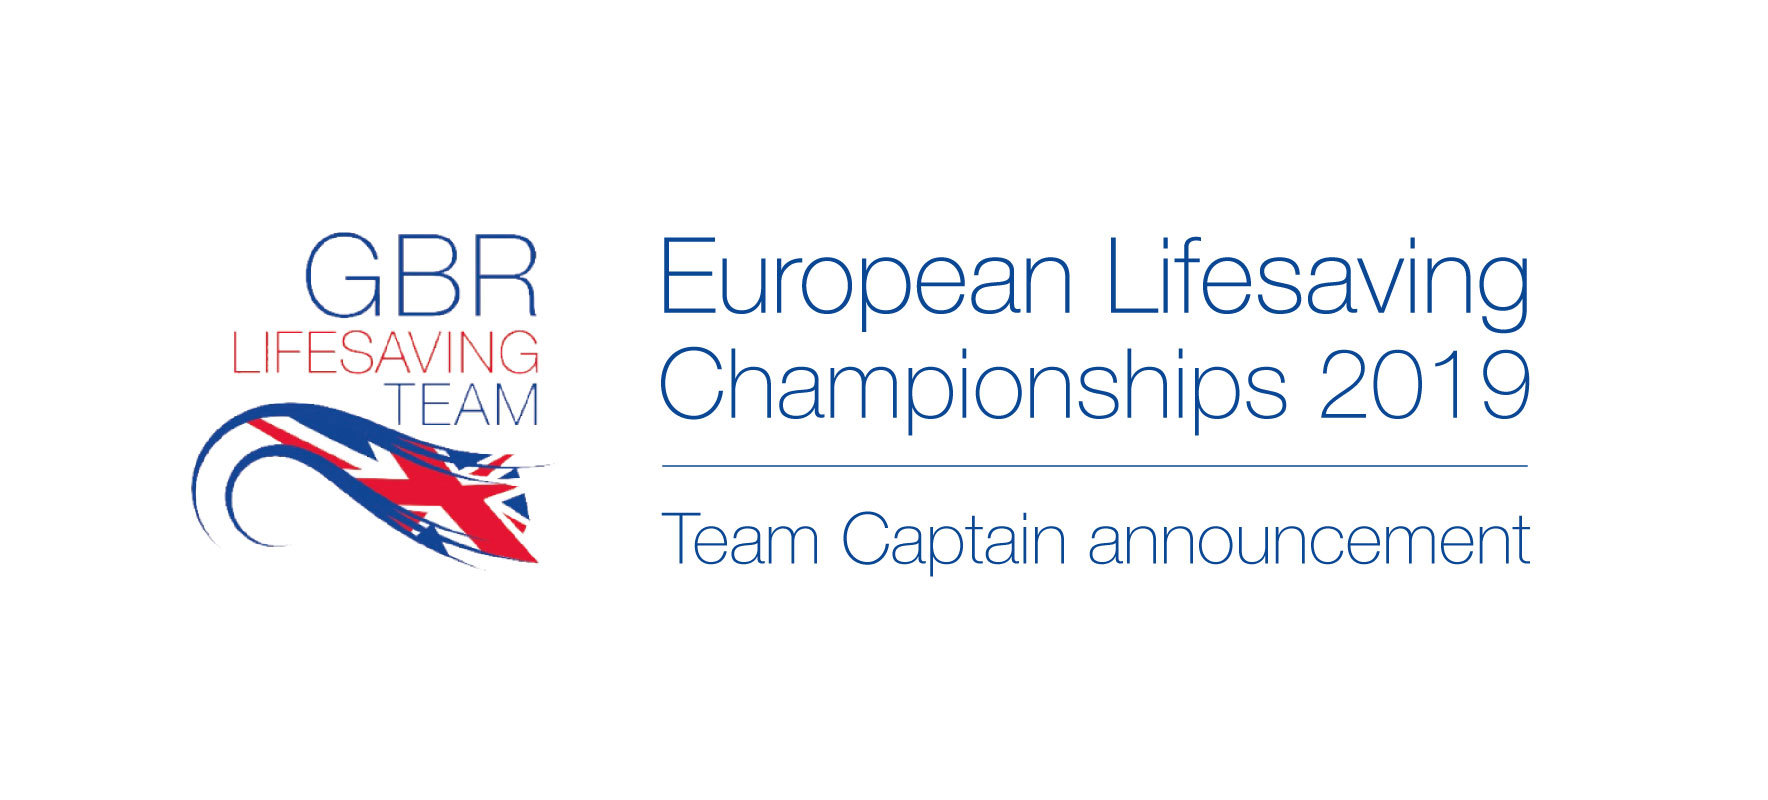 GBR Lifesaving is pleased to announce the Team Captains of the GBR Teams competing in the European Lifesaving Championships 2019